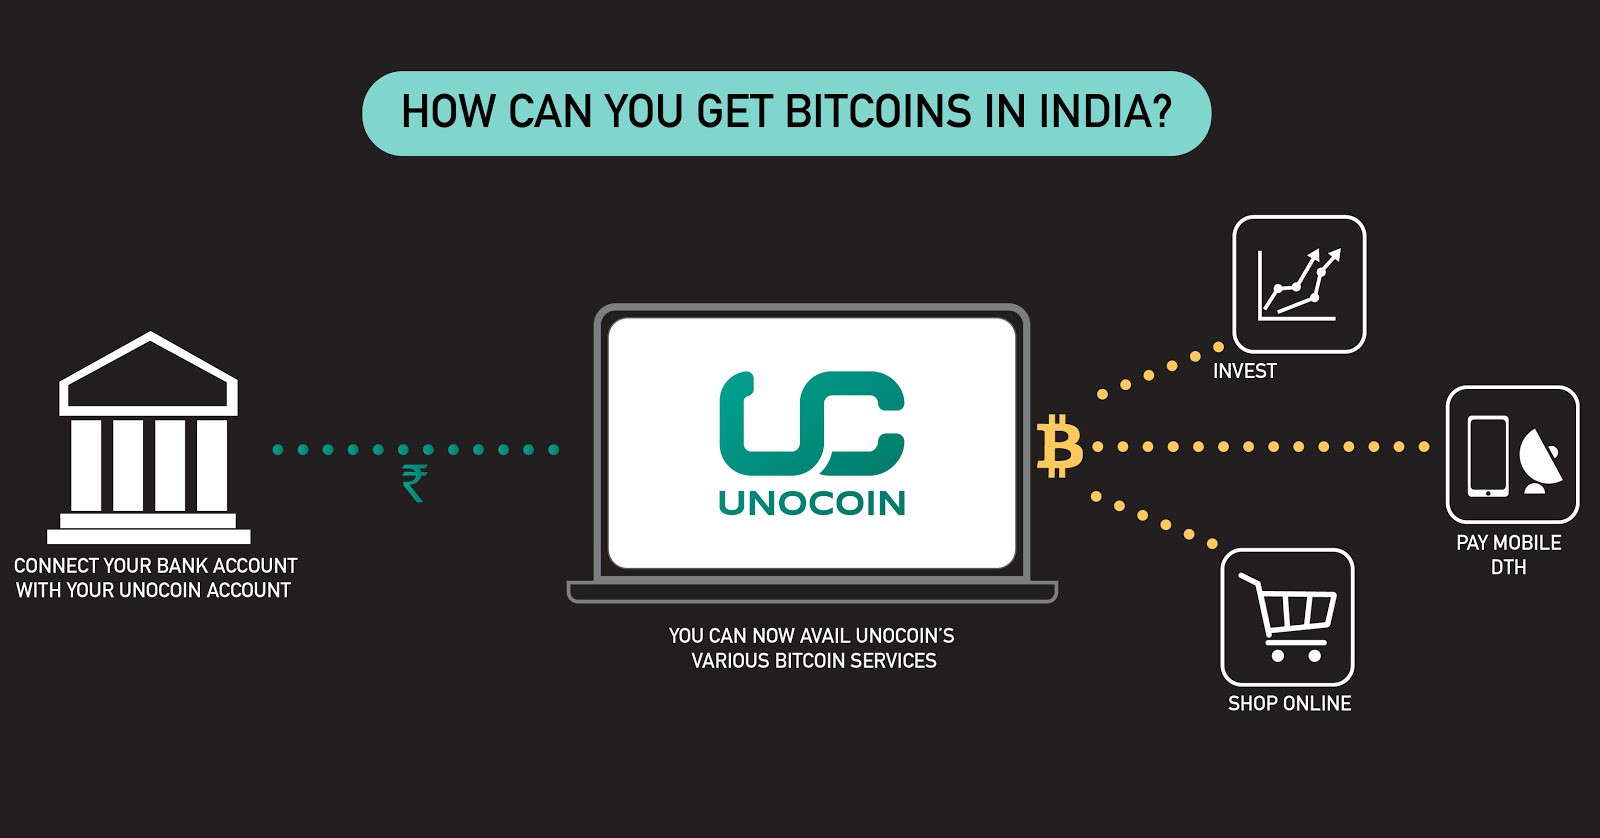 How can you get bitcoins in india unocoin how can you get bitcoins in india ccuart Choice Image